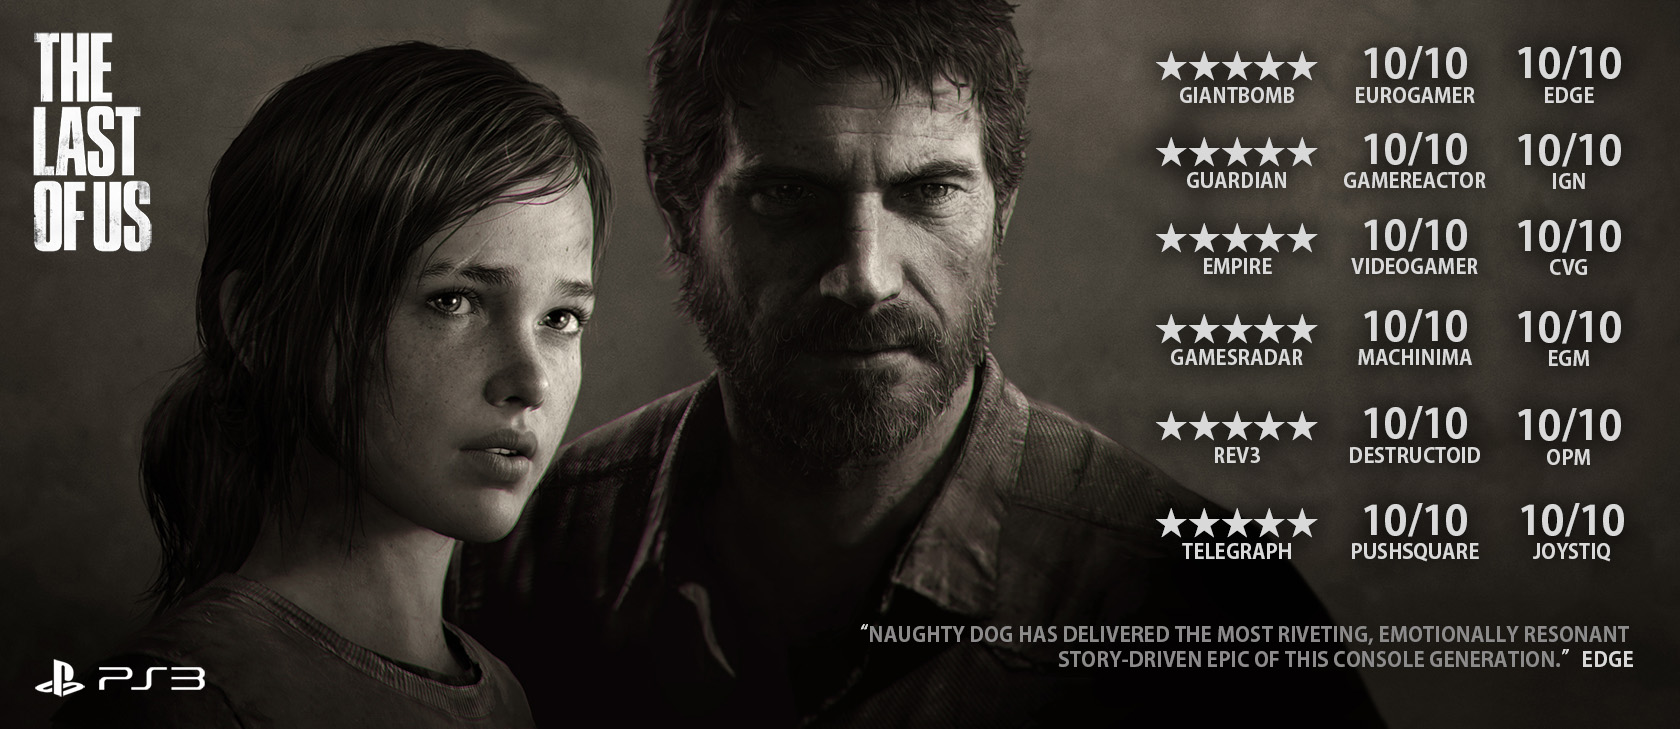 The Last Of Us Review Thread Emargo Up Scores In Op Neogaf